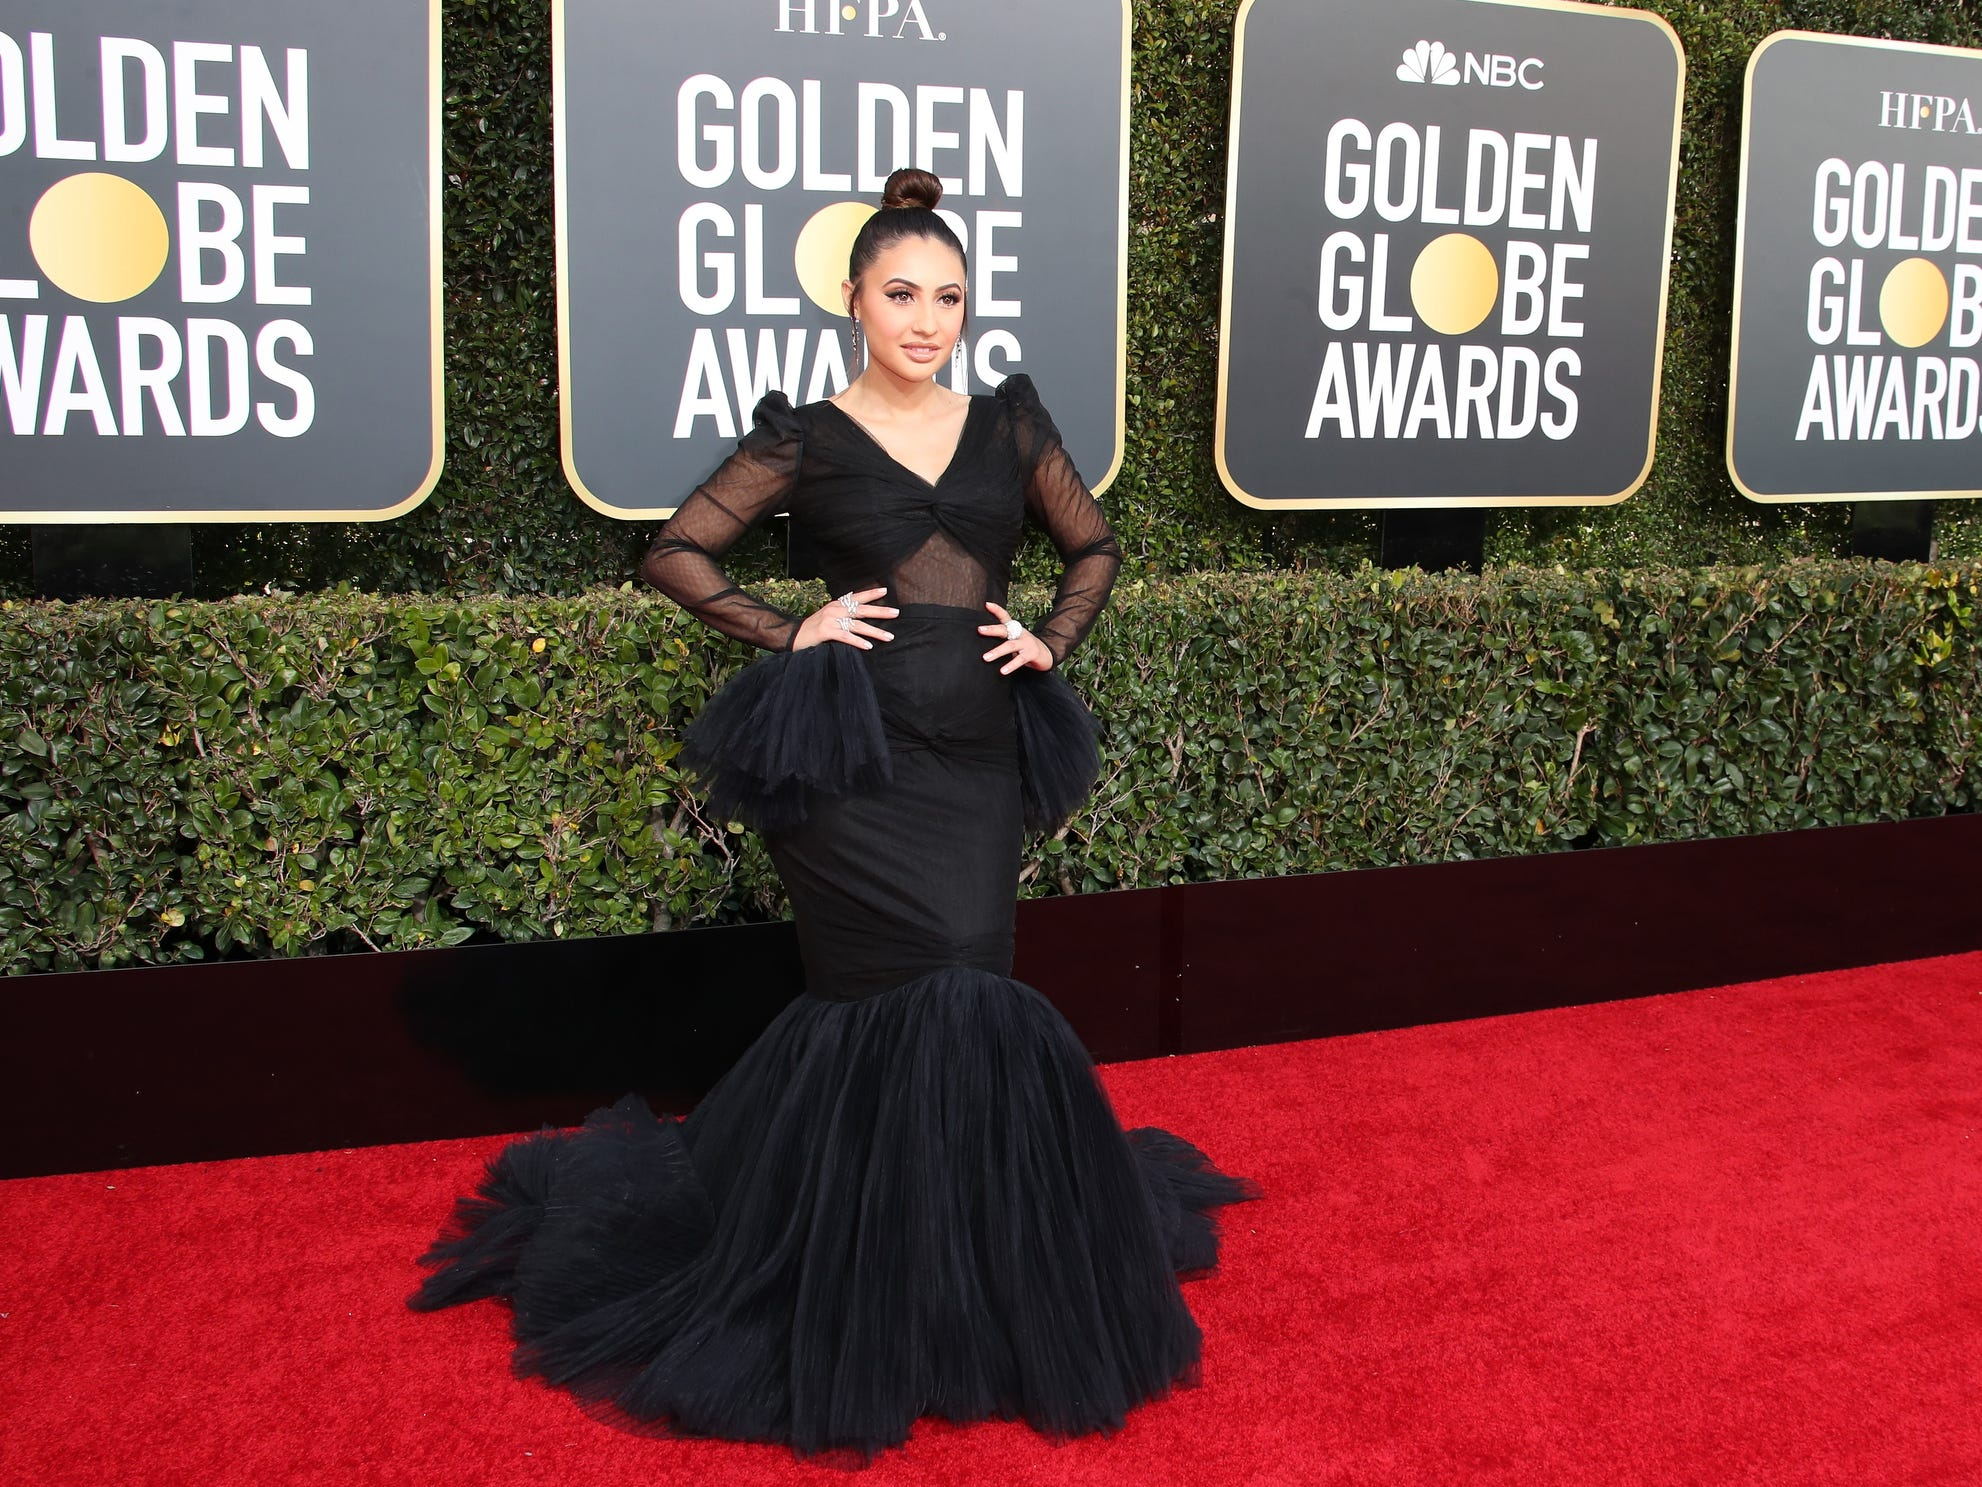 Francia Raisa arrives on the 76th Golden Globe Awards red carpet, Sunday at the Beverly Hilton.